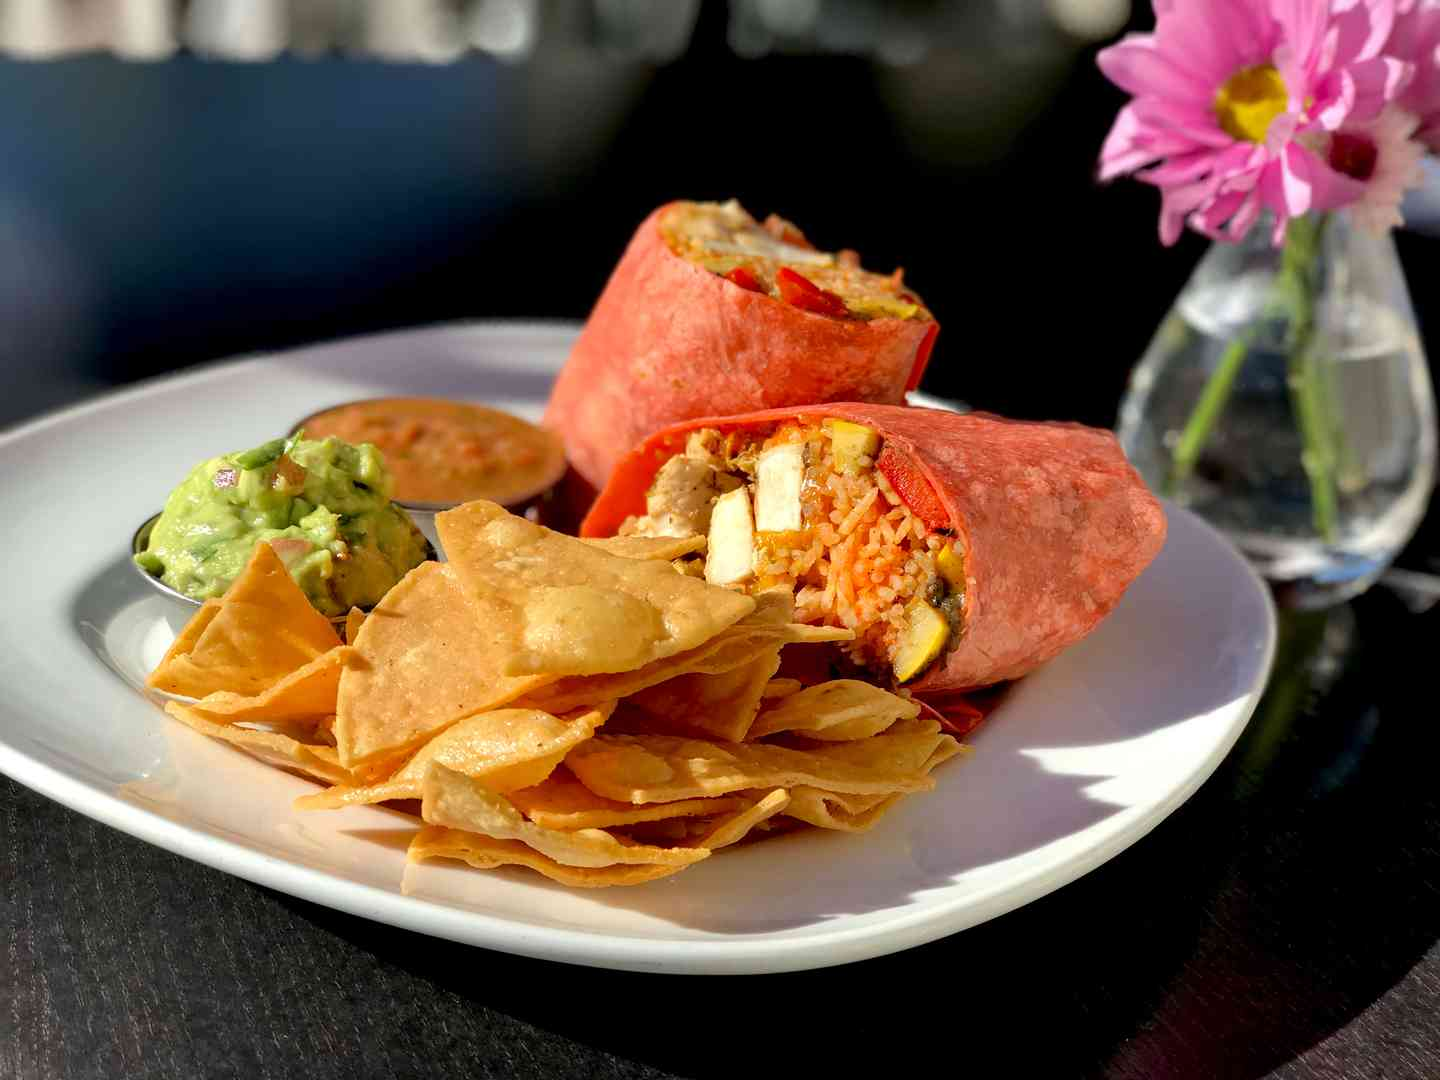 Grilled Jidori Chicken Wrap w/ Grilled Vegetables, Rice, Black Beans, Cheese, Avocado Salsa & Tortilla Chips